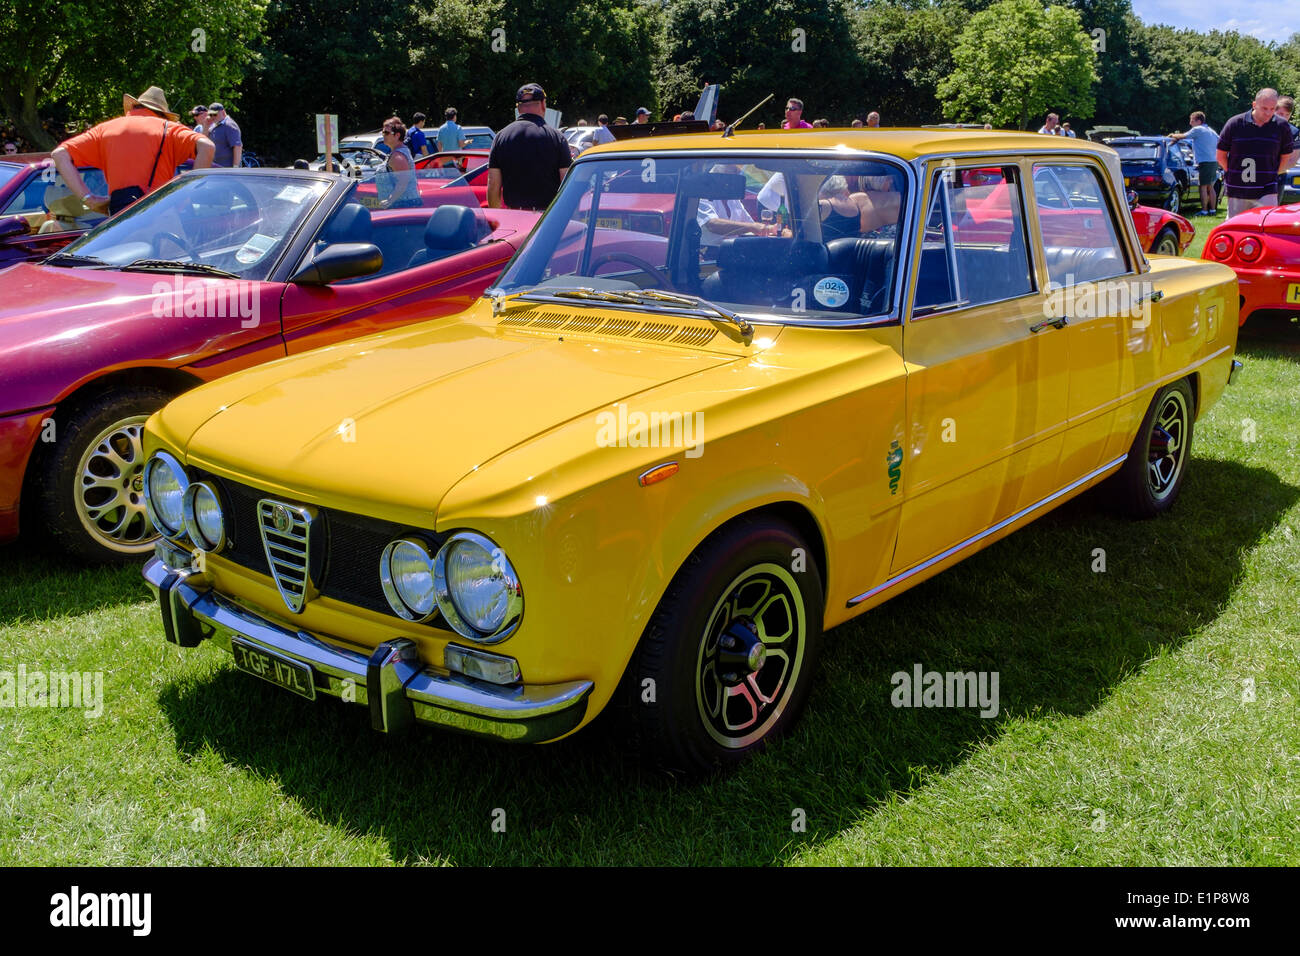 Alfa Romeo Giulia Super on display at Bromley Pageant of Motoring annual classic car show. - Stock Image